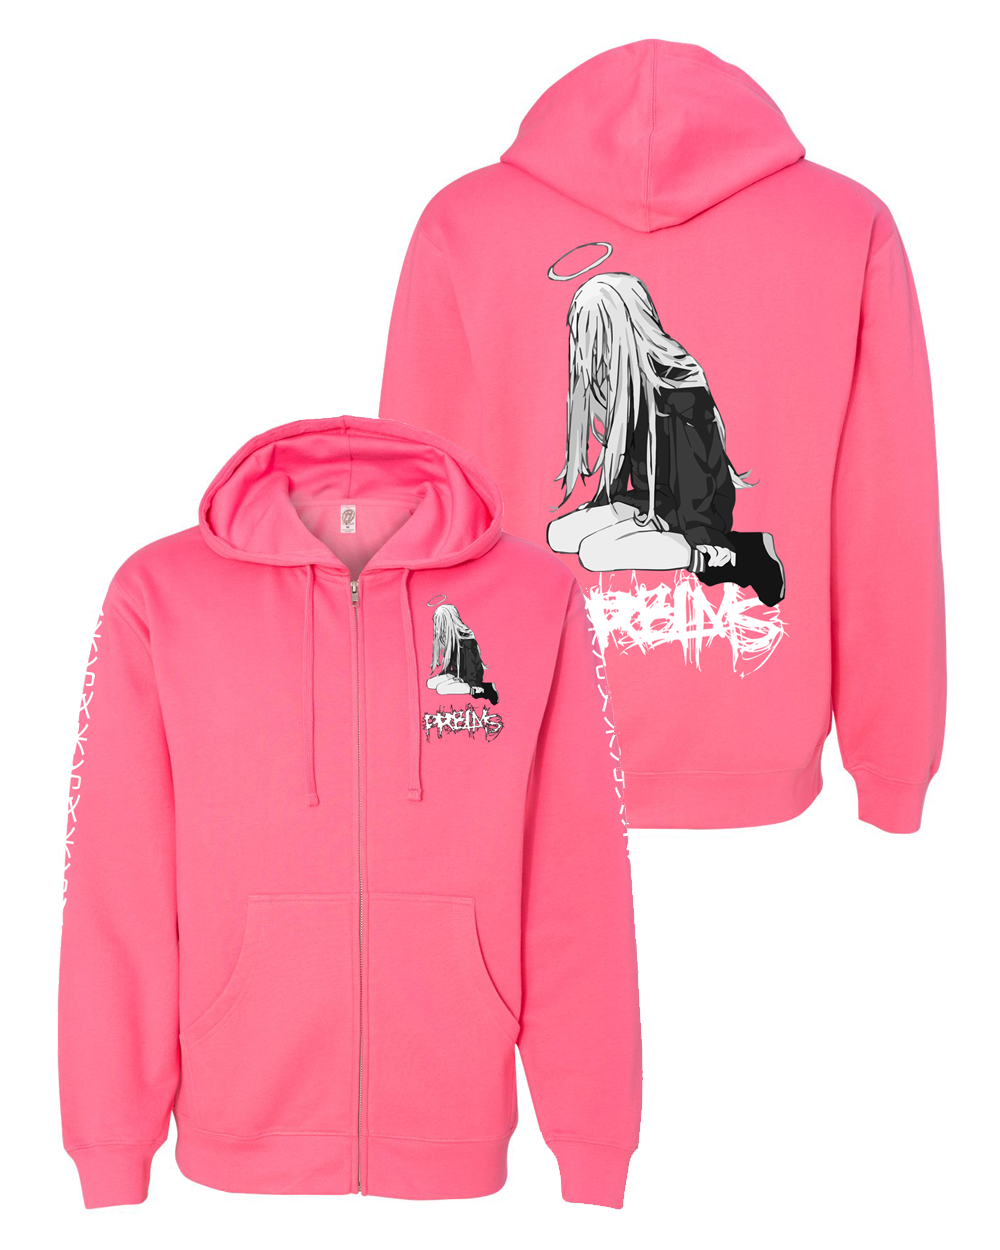 PRBLMS : Youthinasia Zip Up